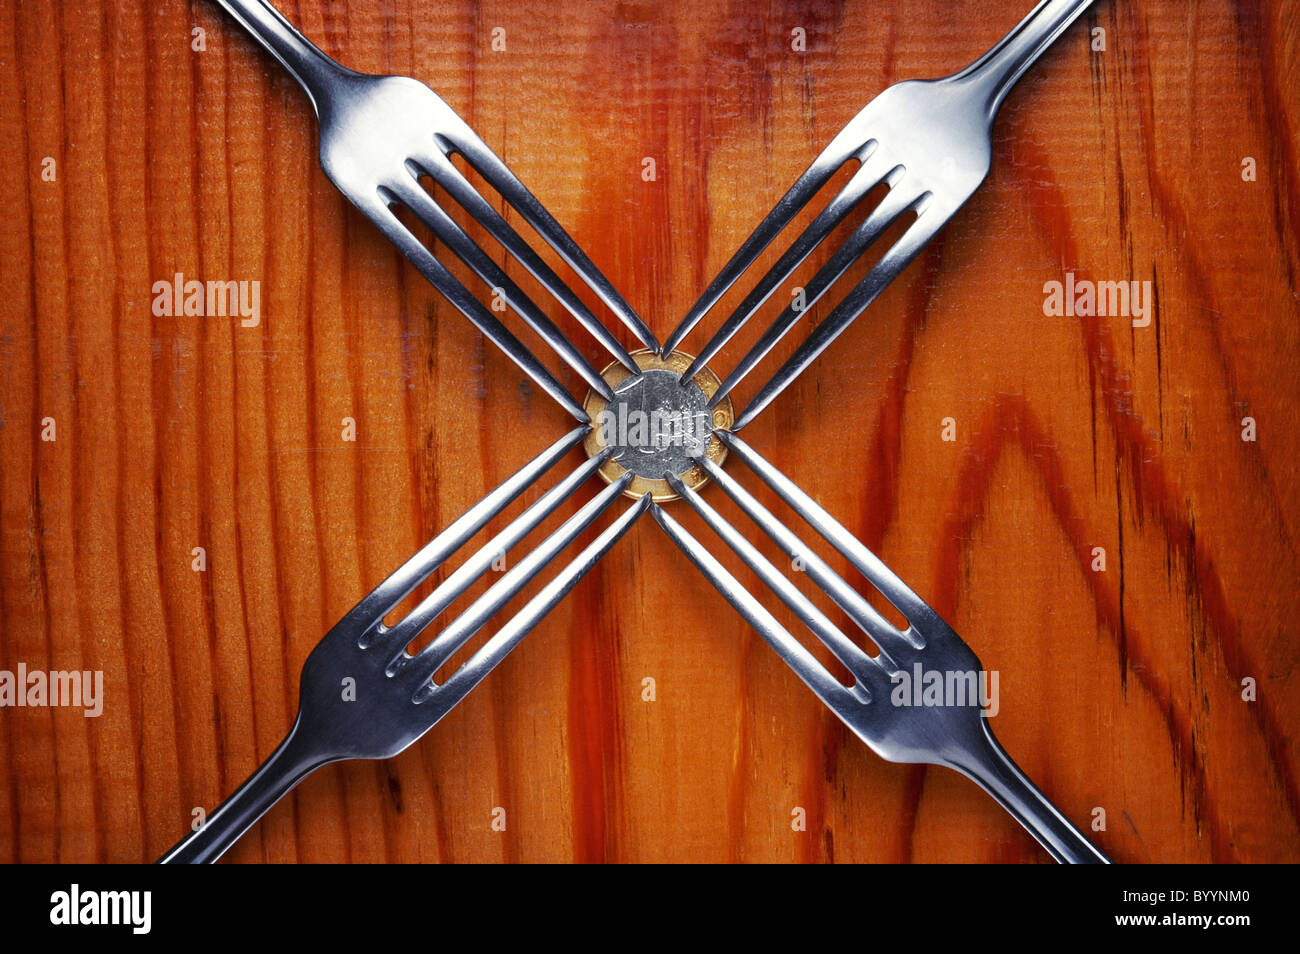 Four forks fighting over one euro coin , financial crisis competition ,wood background - Stock Image